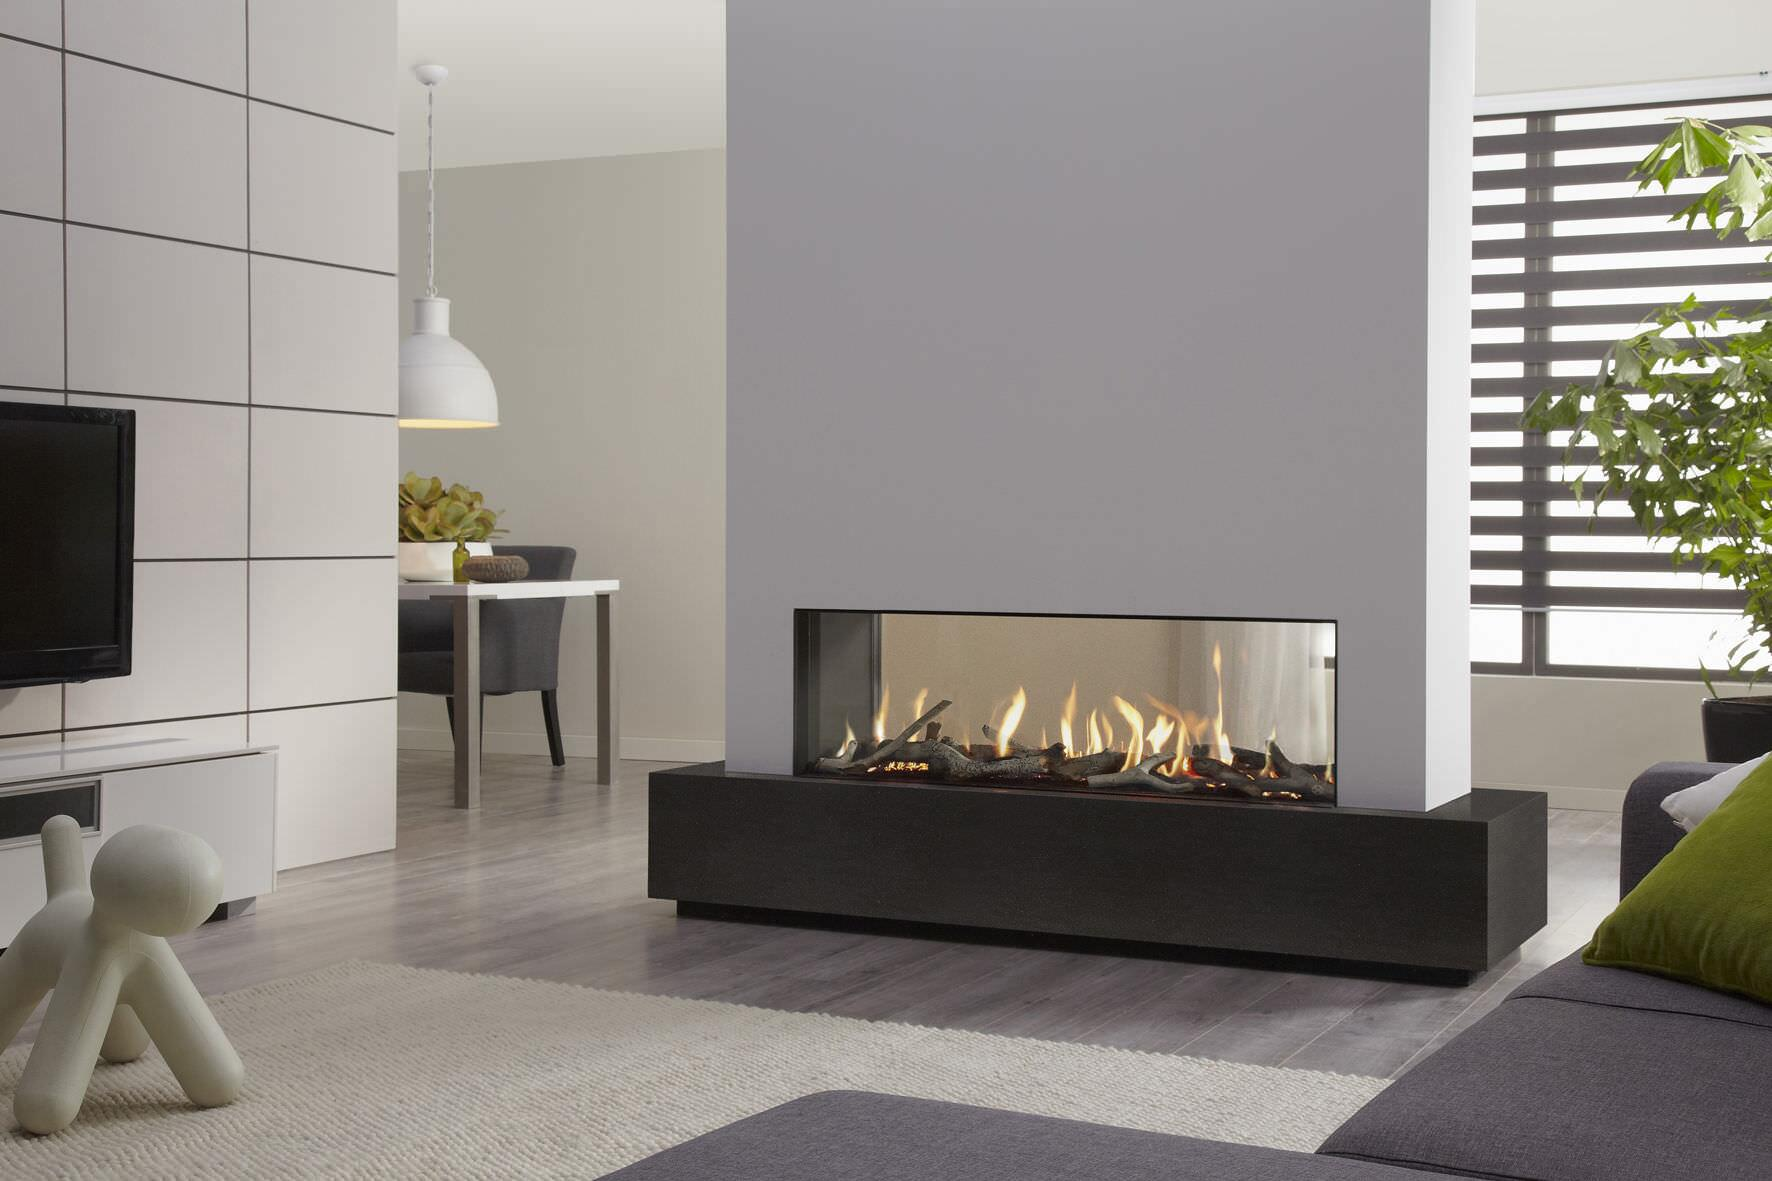 48 Inch Real Fire Remote Controlled Smart Bioethanol Fireplace Intelligent